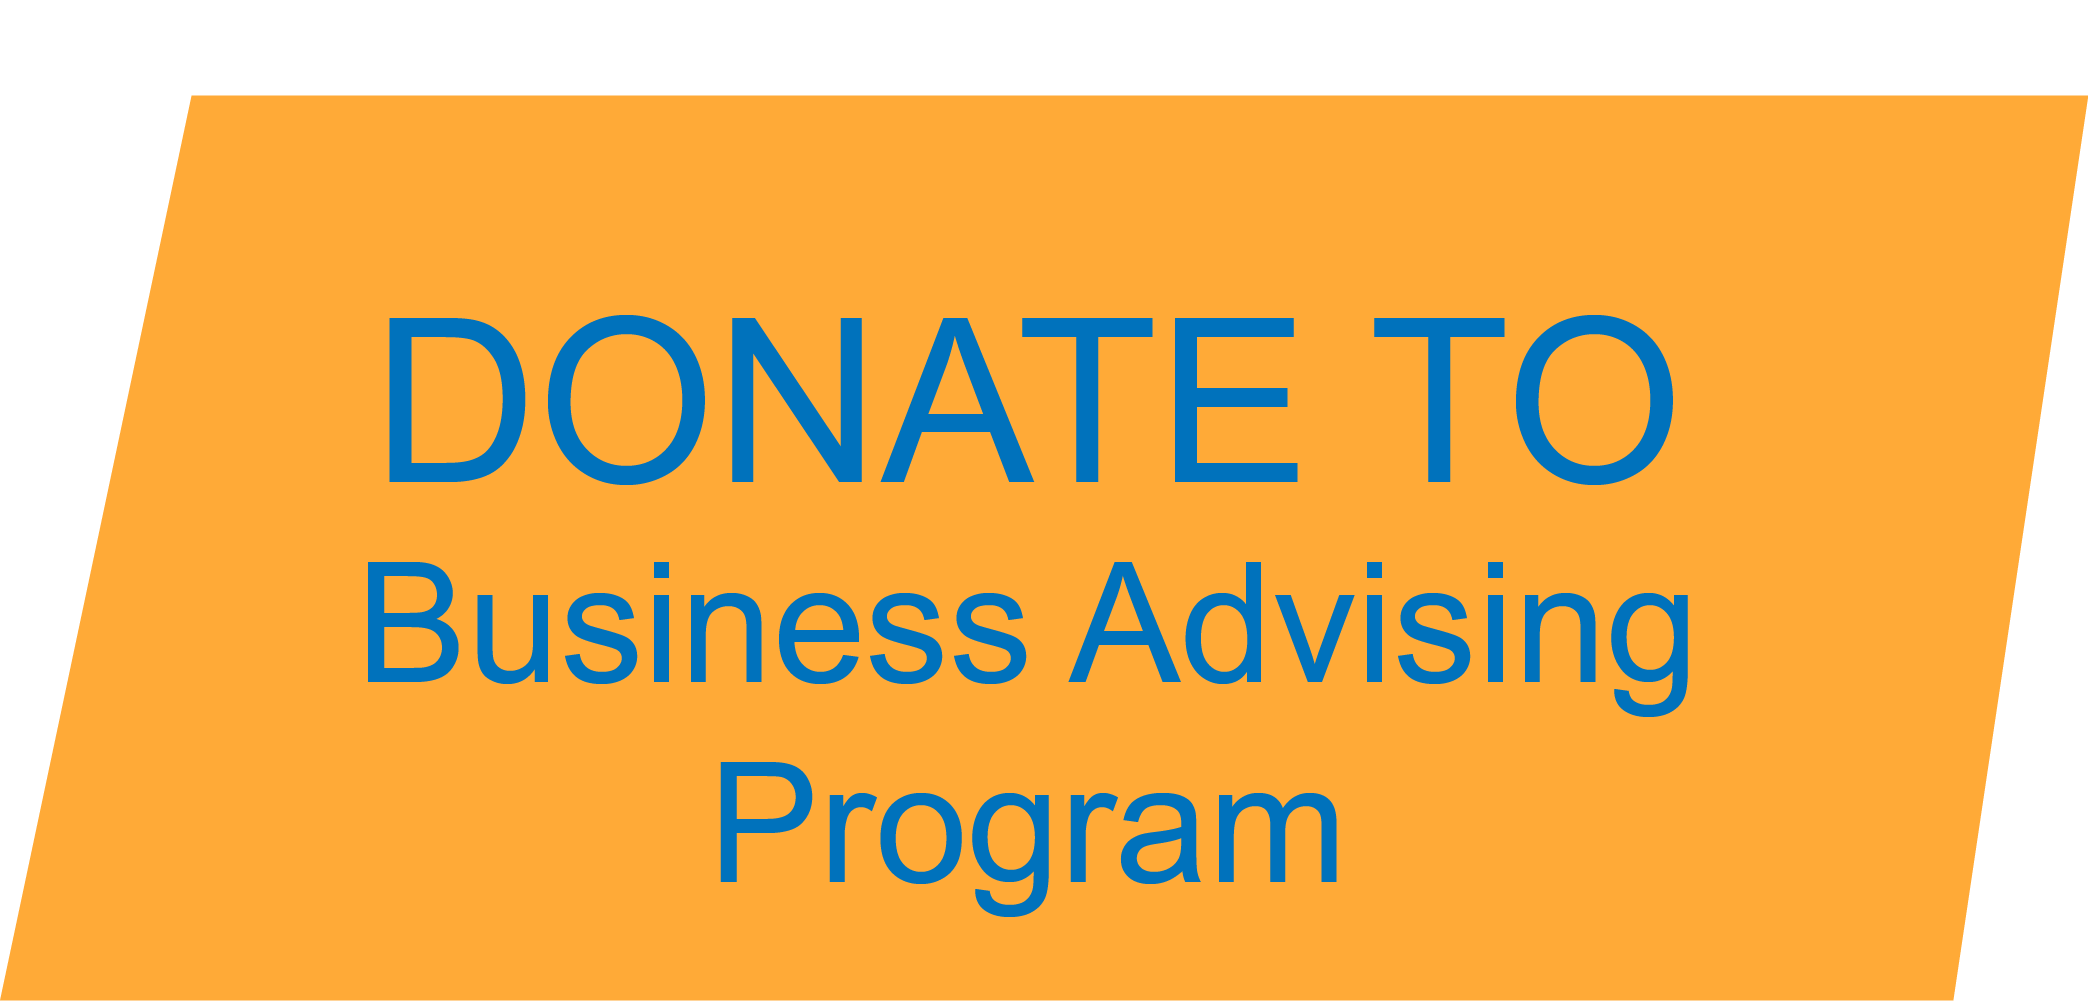 icon that reads Donate to Business Advising Program